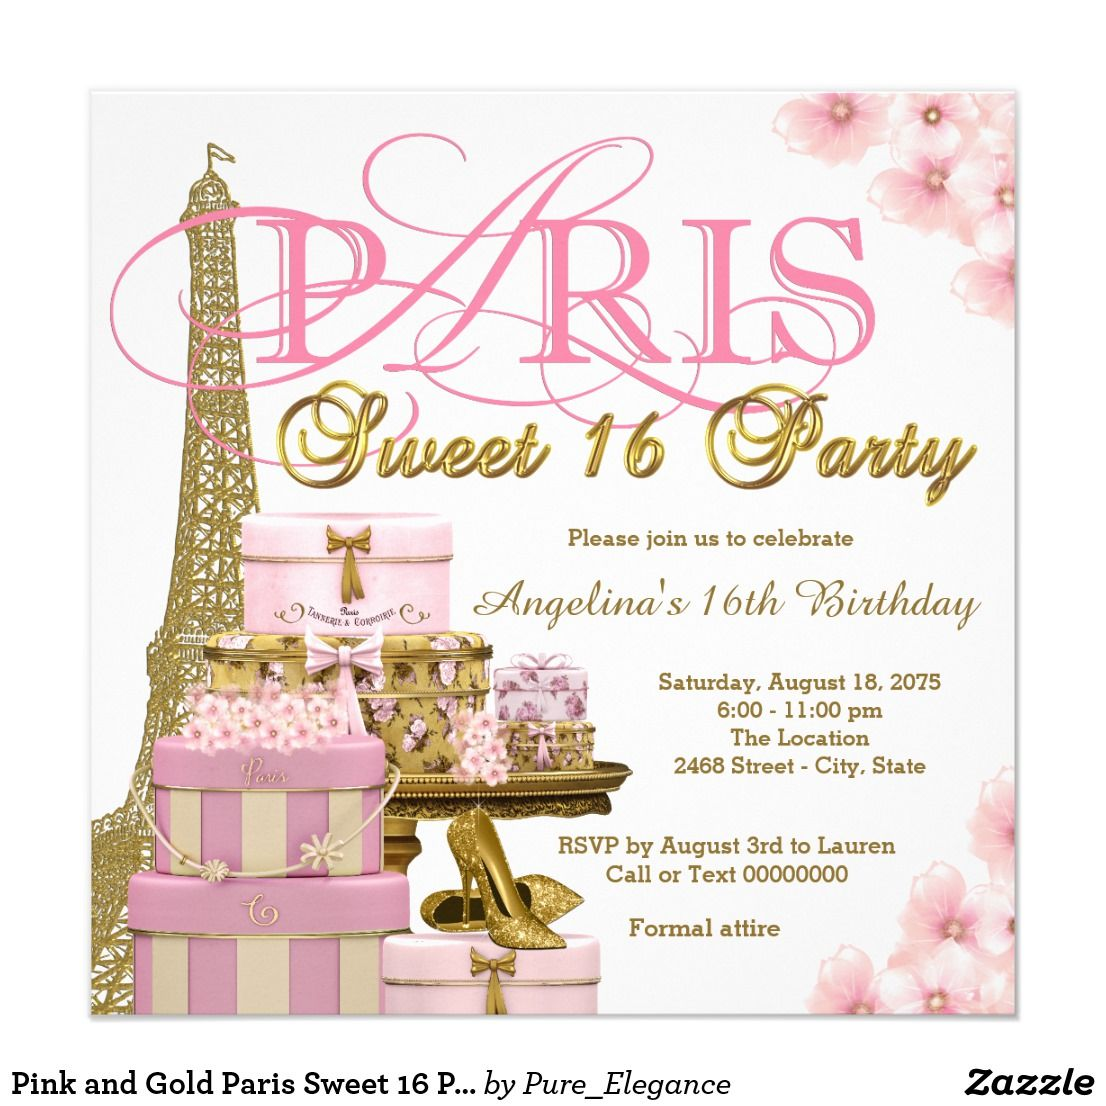 Pink and Gold Paris Sweet 16 Party Card Paris Sweet 16 birthday ...